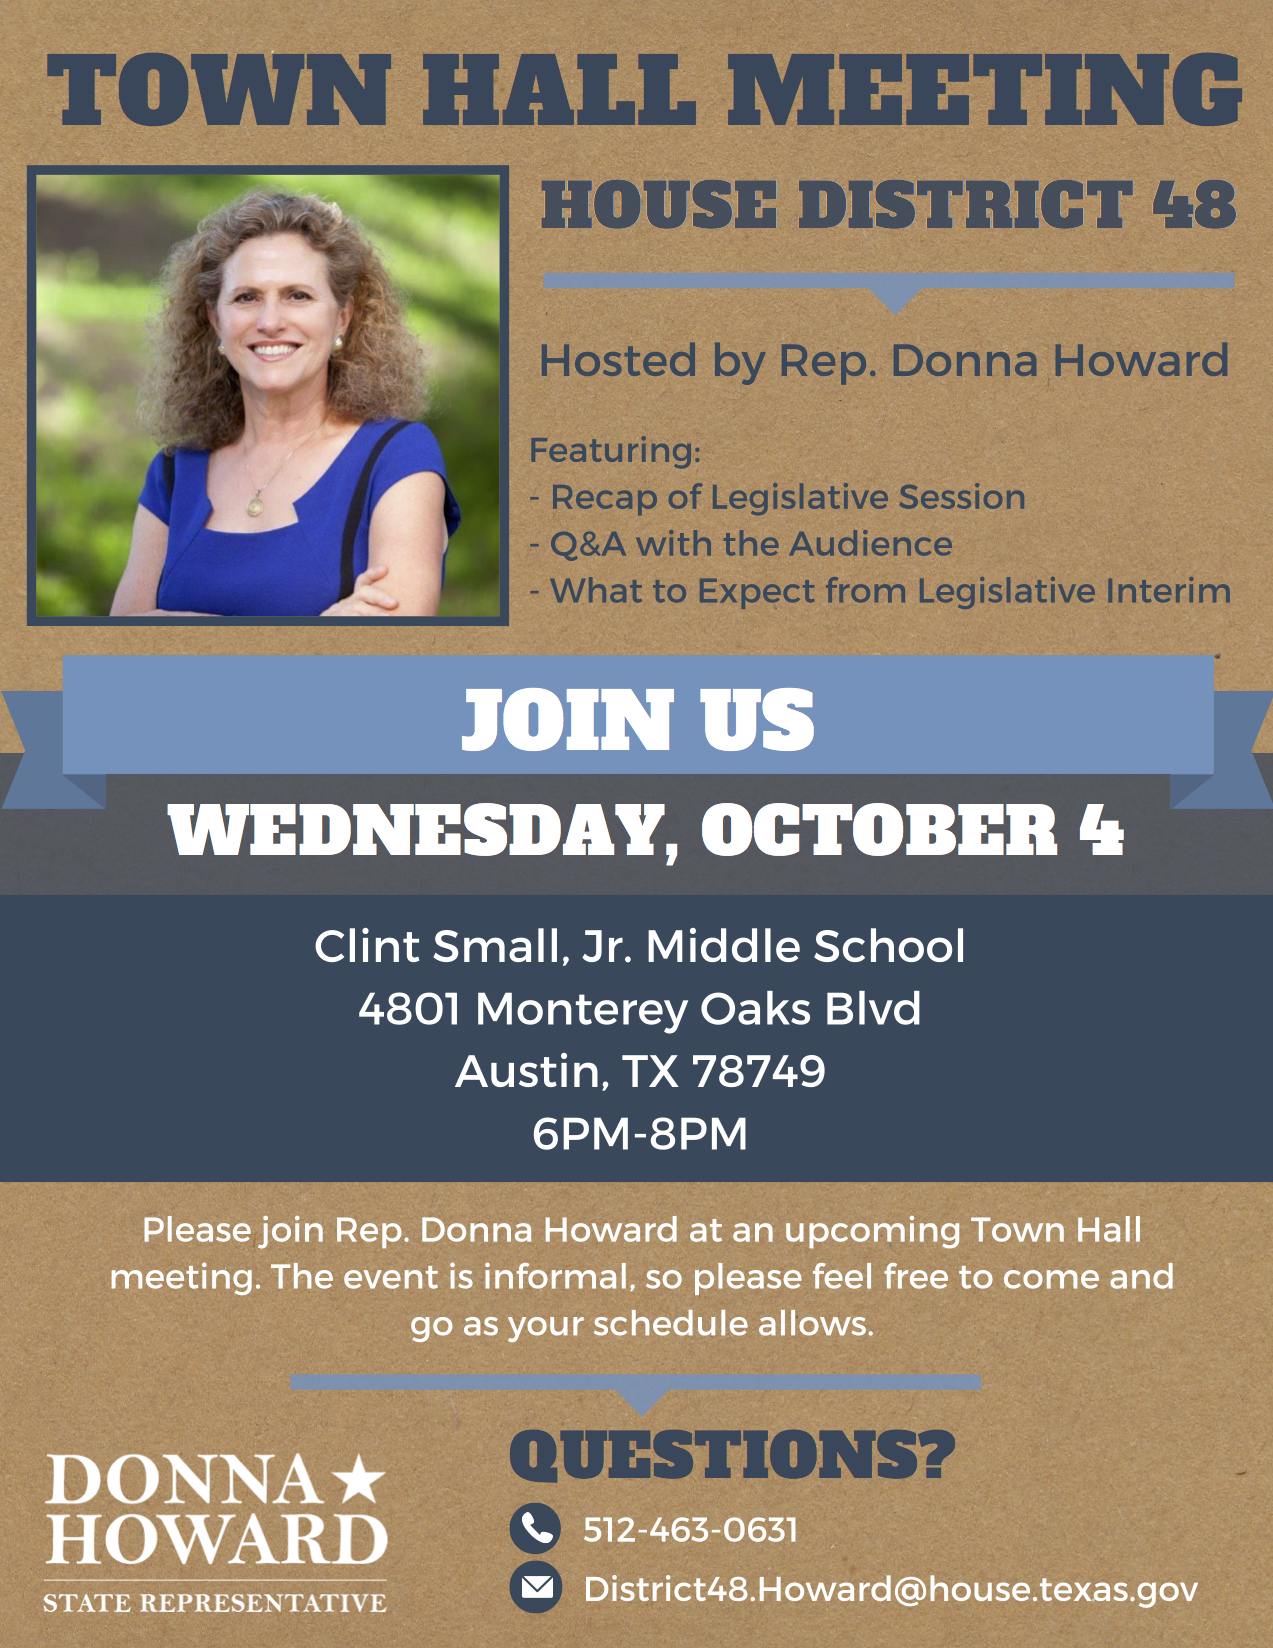 Flyer_DH Town Hall_Small Middle School.jpg